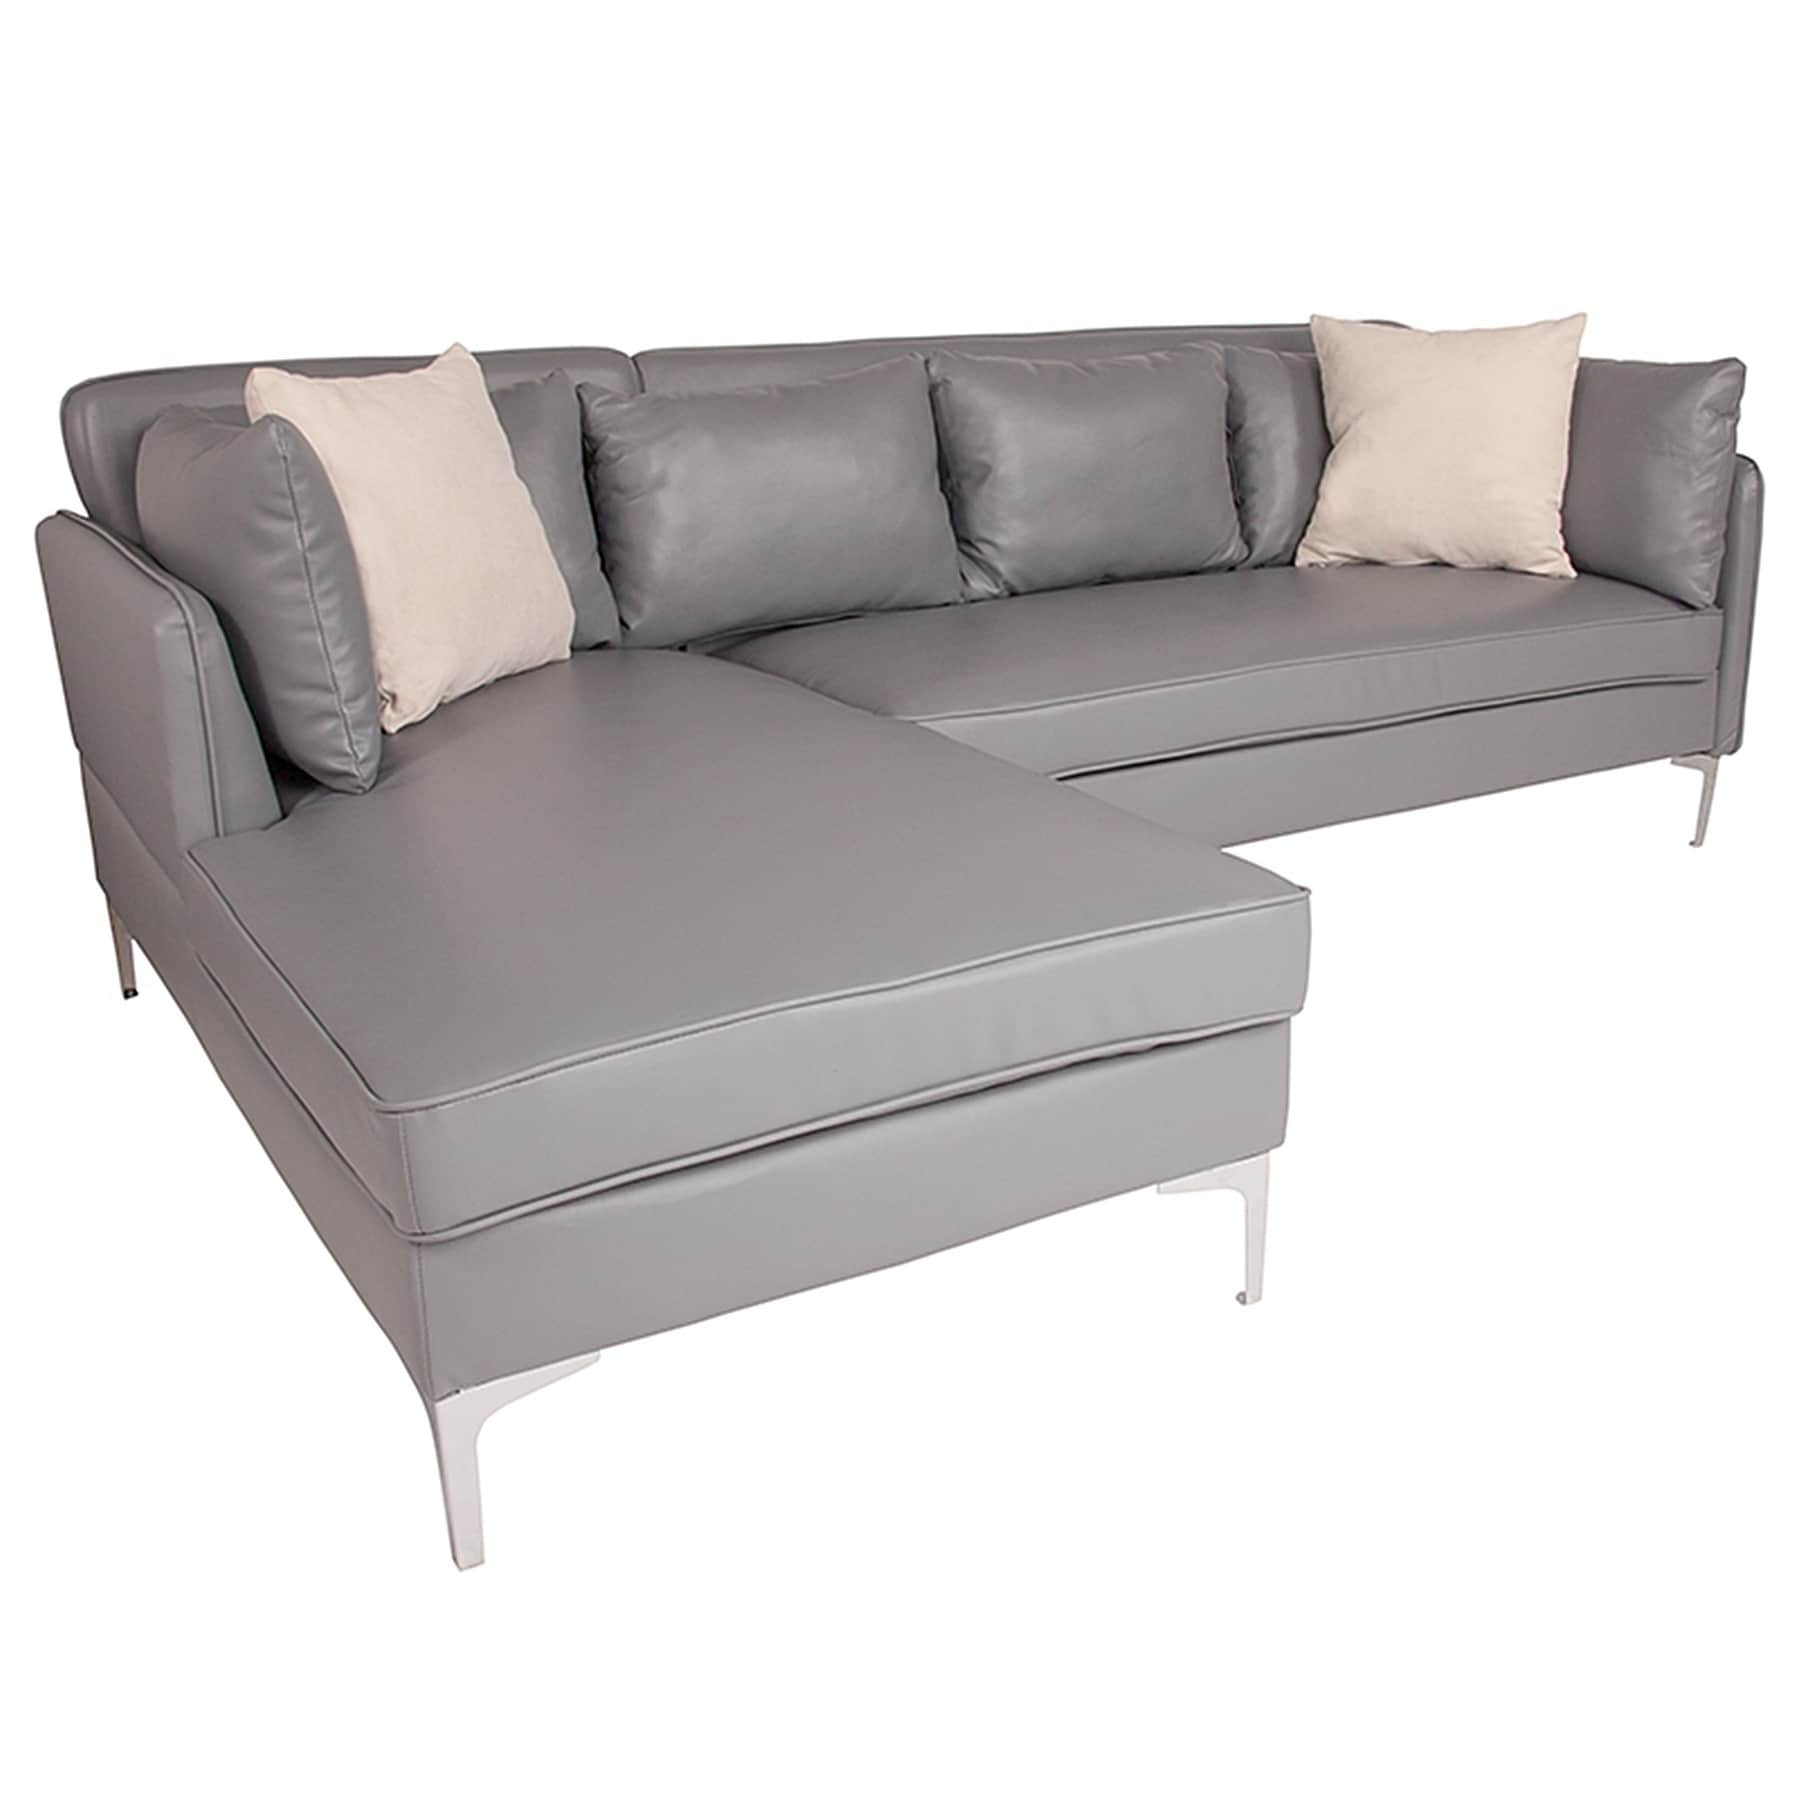 Shop Hempstead Modern Grey Leather Sectional Sofa with Left Facing ...